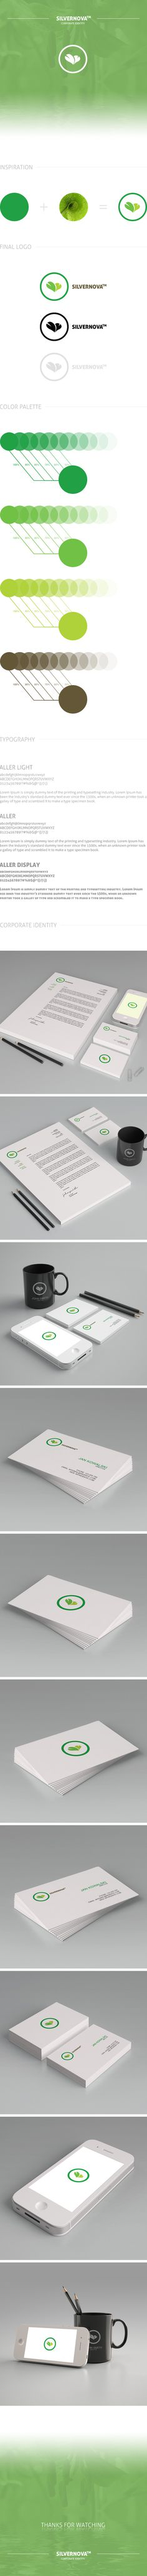 SILVERNOVA #design #corporate #identity #ci #logo